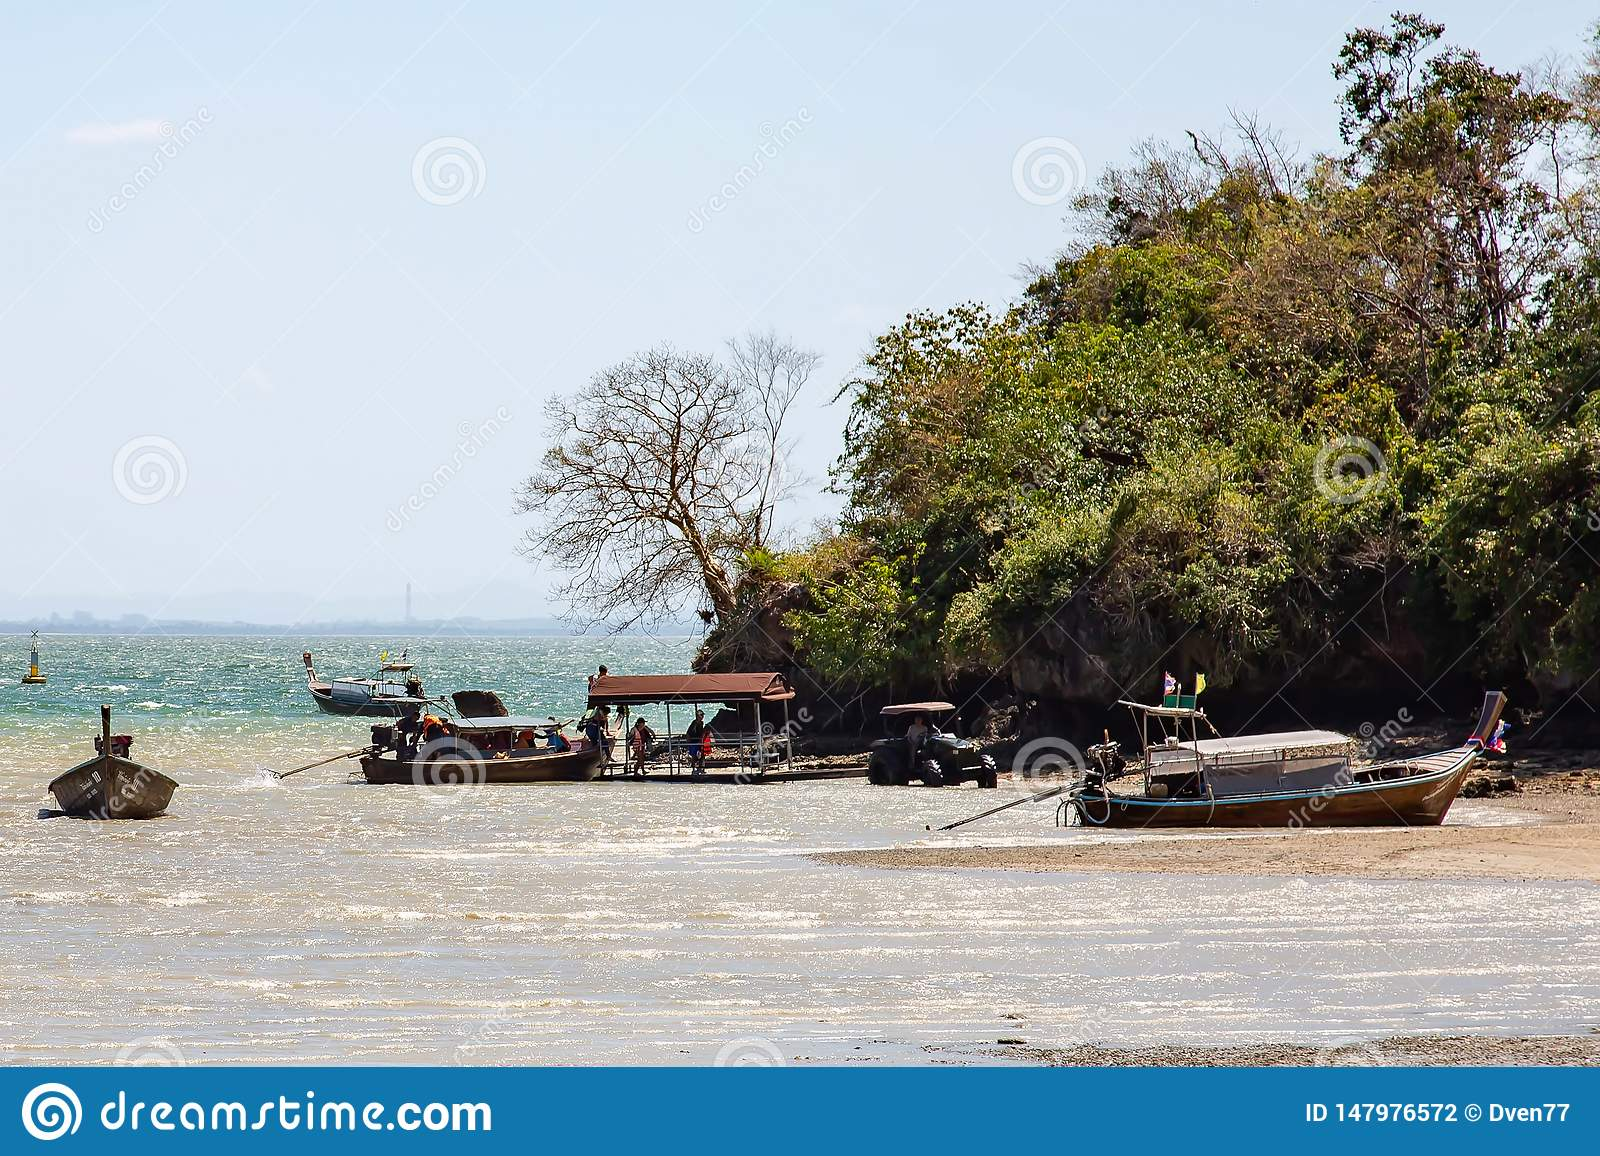 Krabi Province, Thailand - May 12, 2019: A tractor picks up tourists from a boat at low tide. There is no other way to reach the